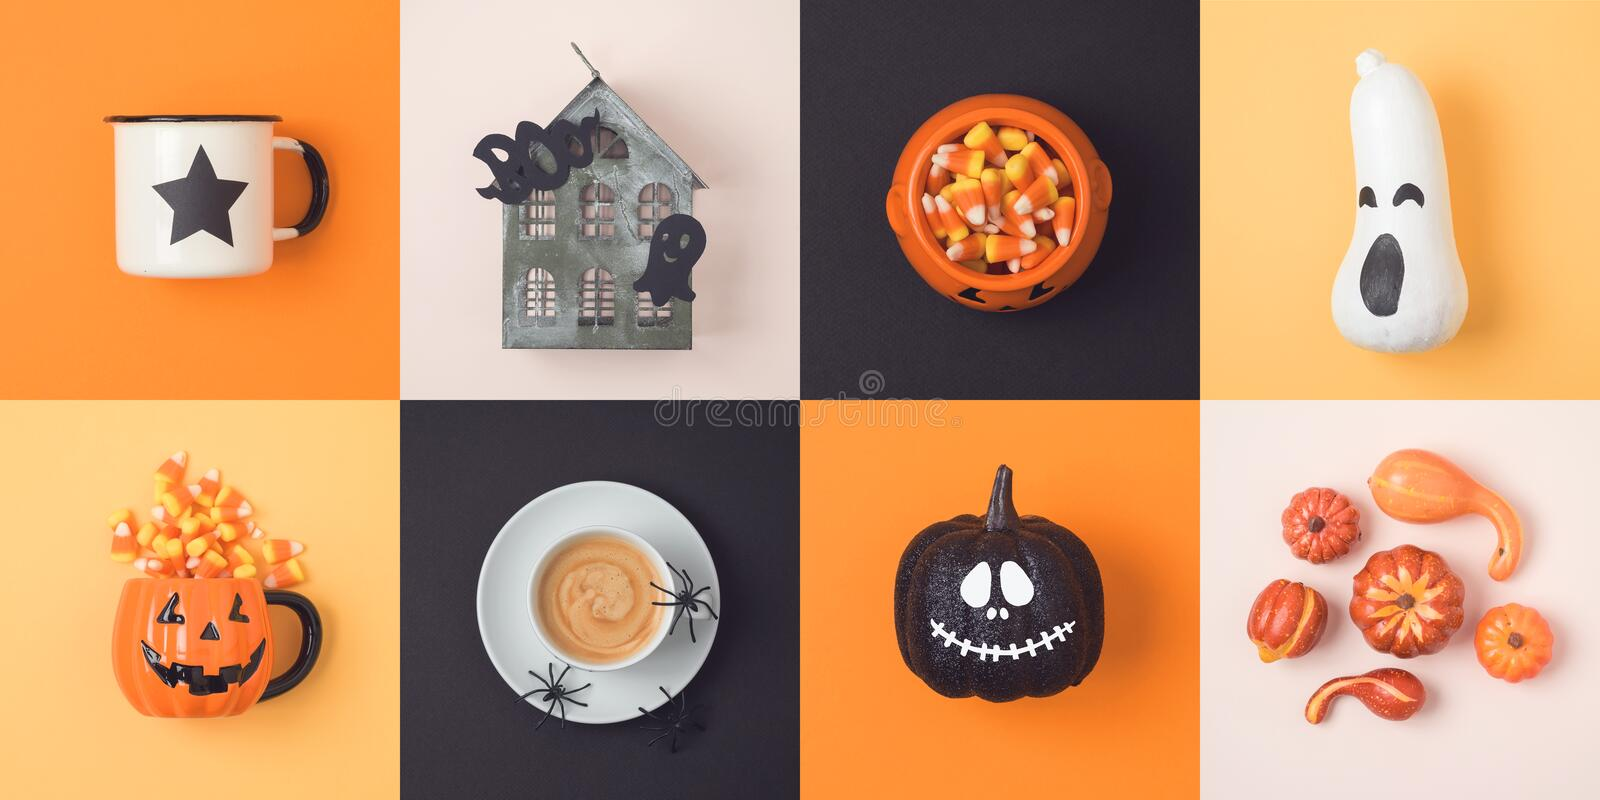 Halloween holiday concept with jack o lantern pumpkin and decorations. View from above. Flat lay stock photos